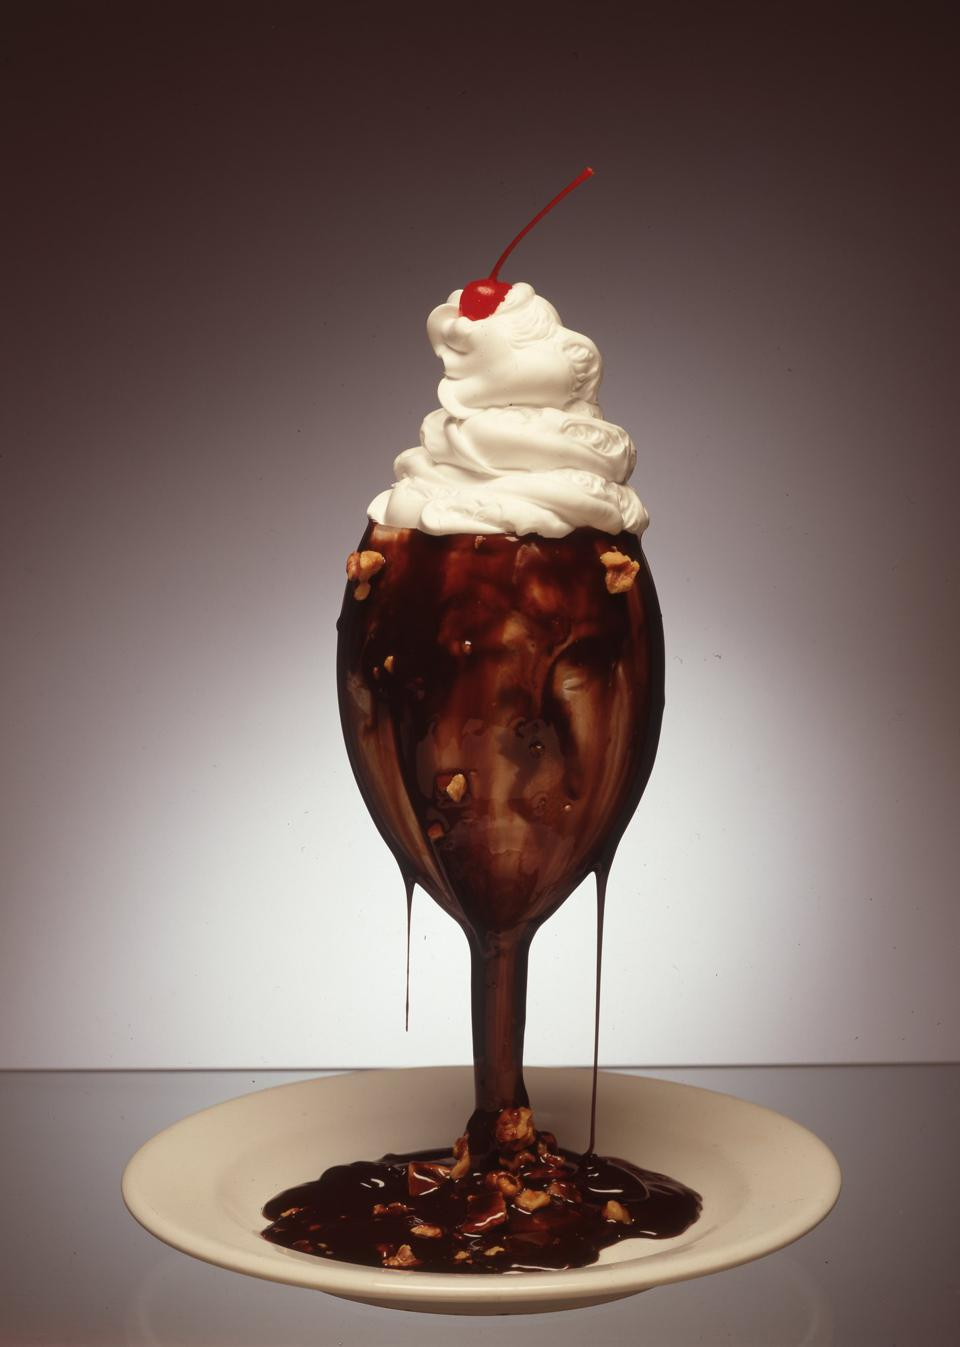 The 'Messy Sundae' from Sammy's Woodfired Pizza & Grill